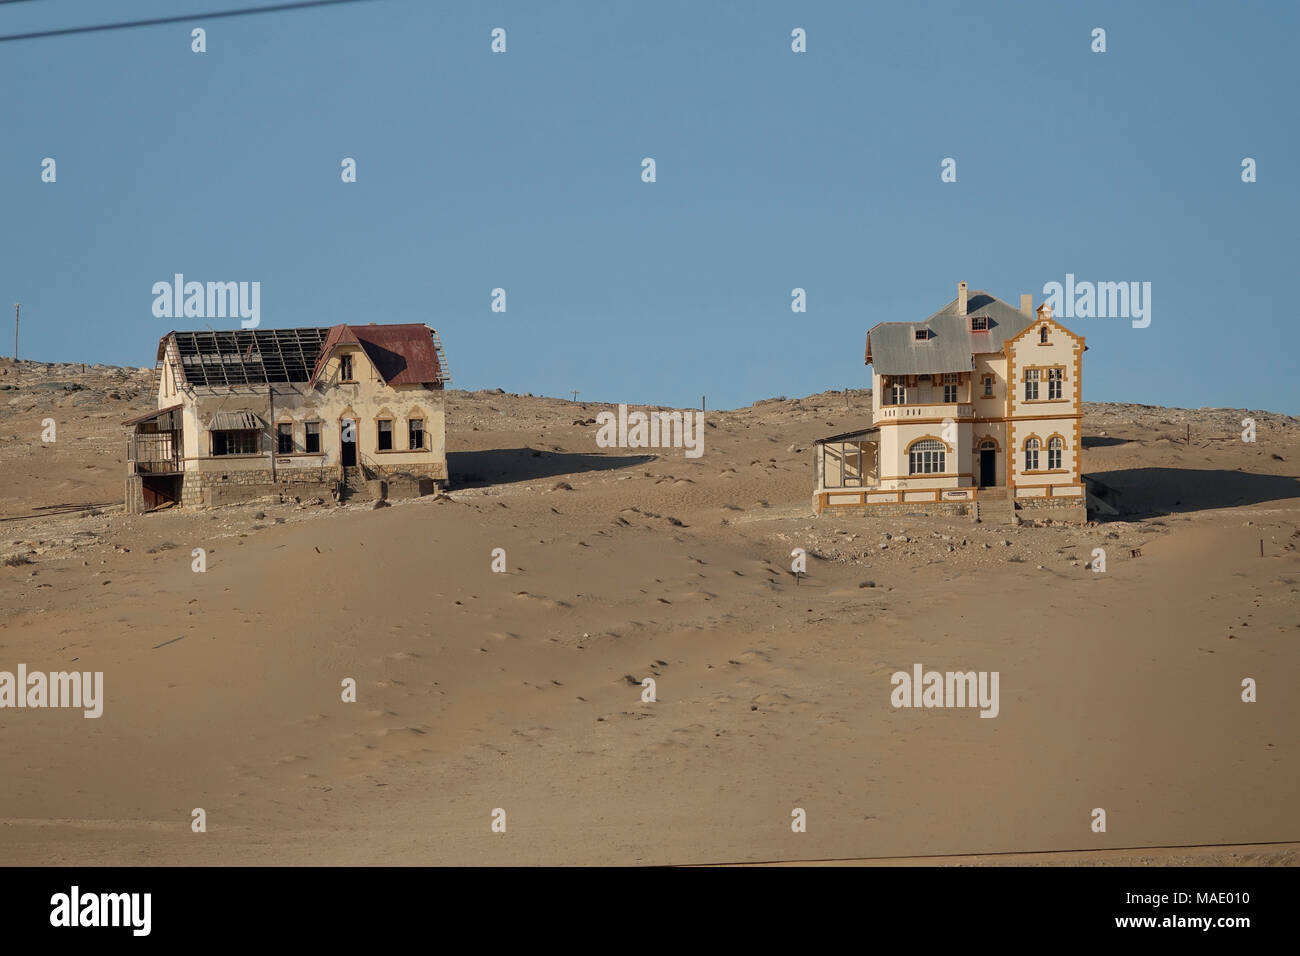 Kolmannskuppe abandoned diamond city - Stock Image